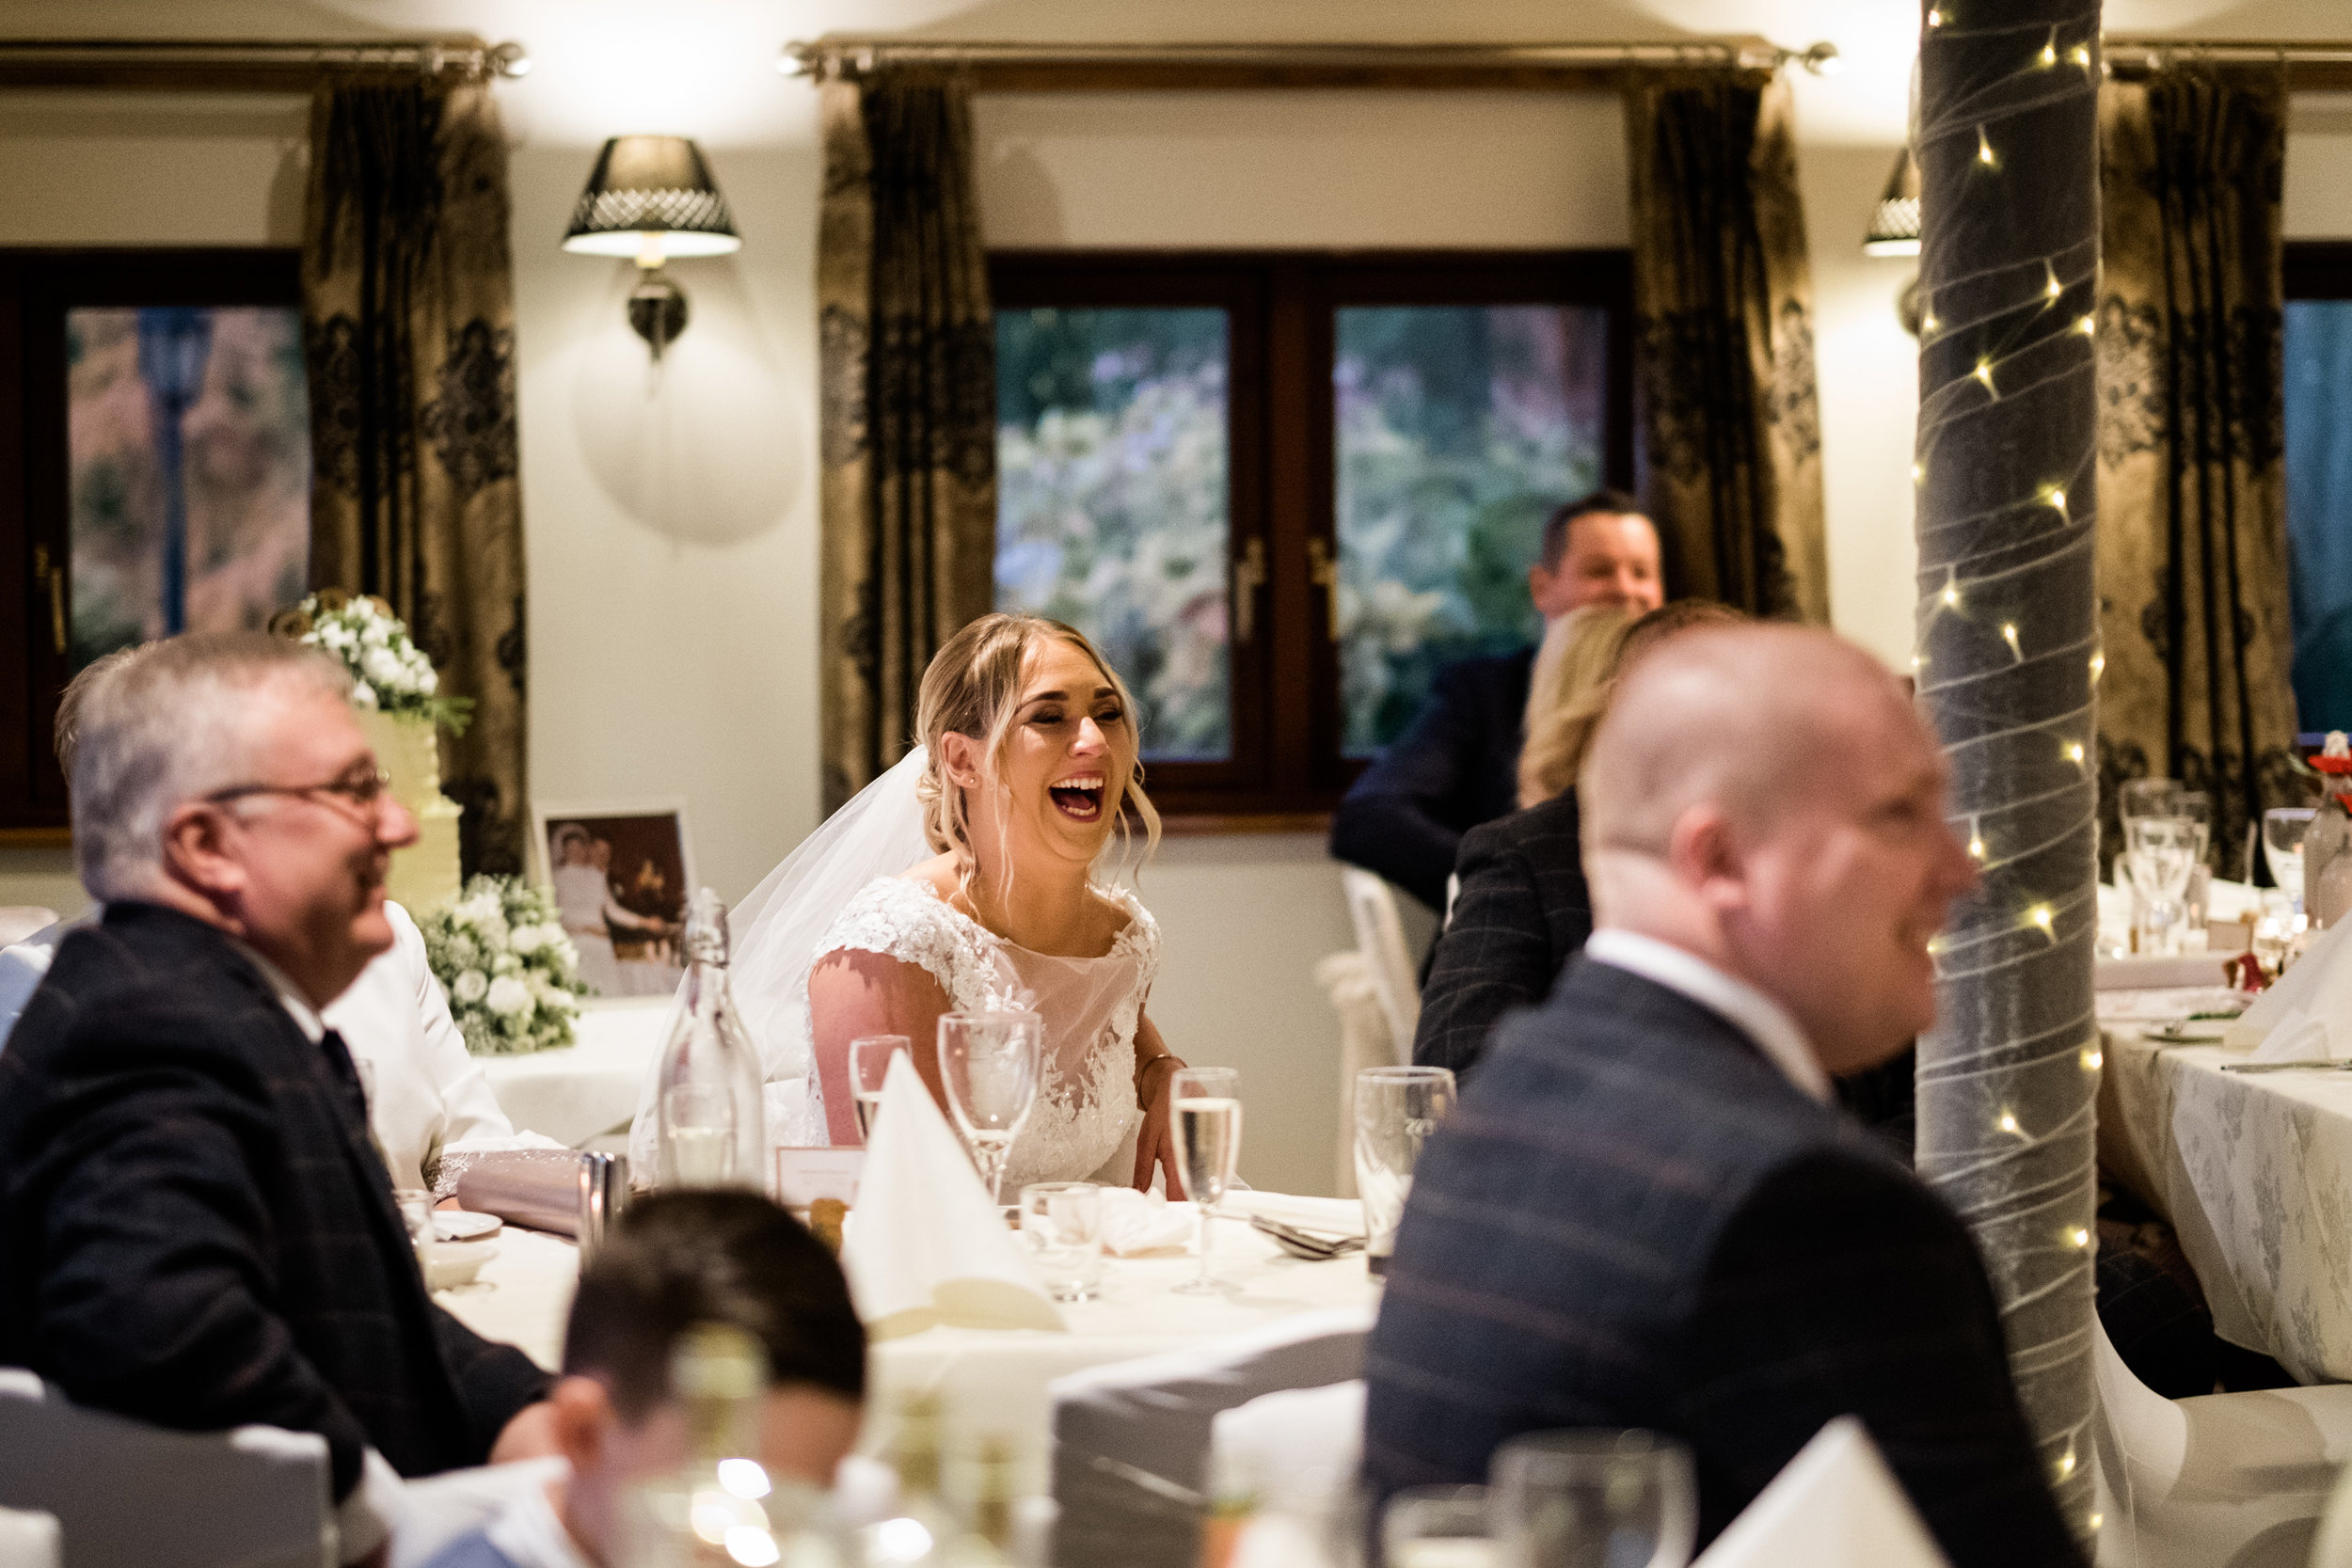 Autumn Wedding Photography at The Three Horseshoes, Blackshaw Moor, Staffordshire Moorlands - Jenny Harper-45.jpg